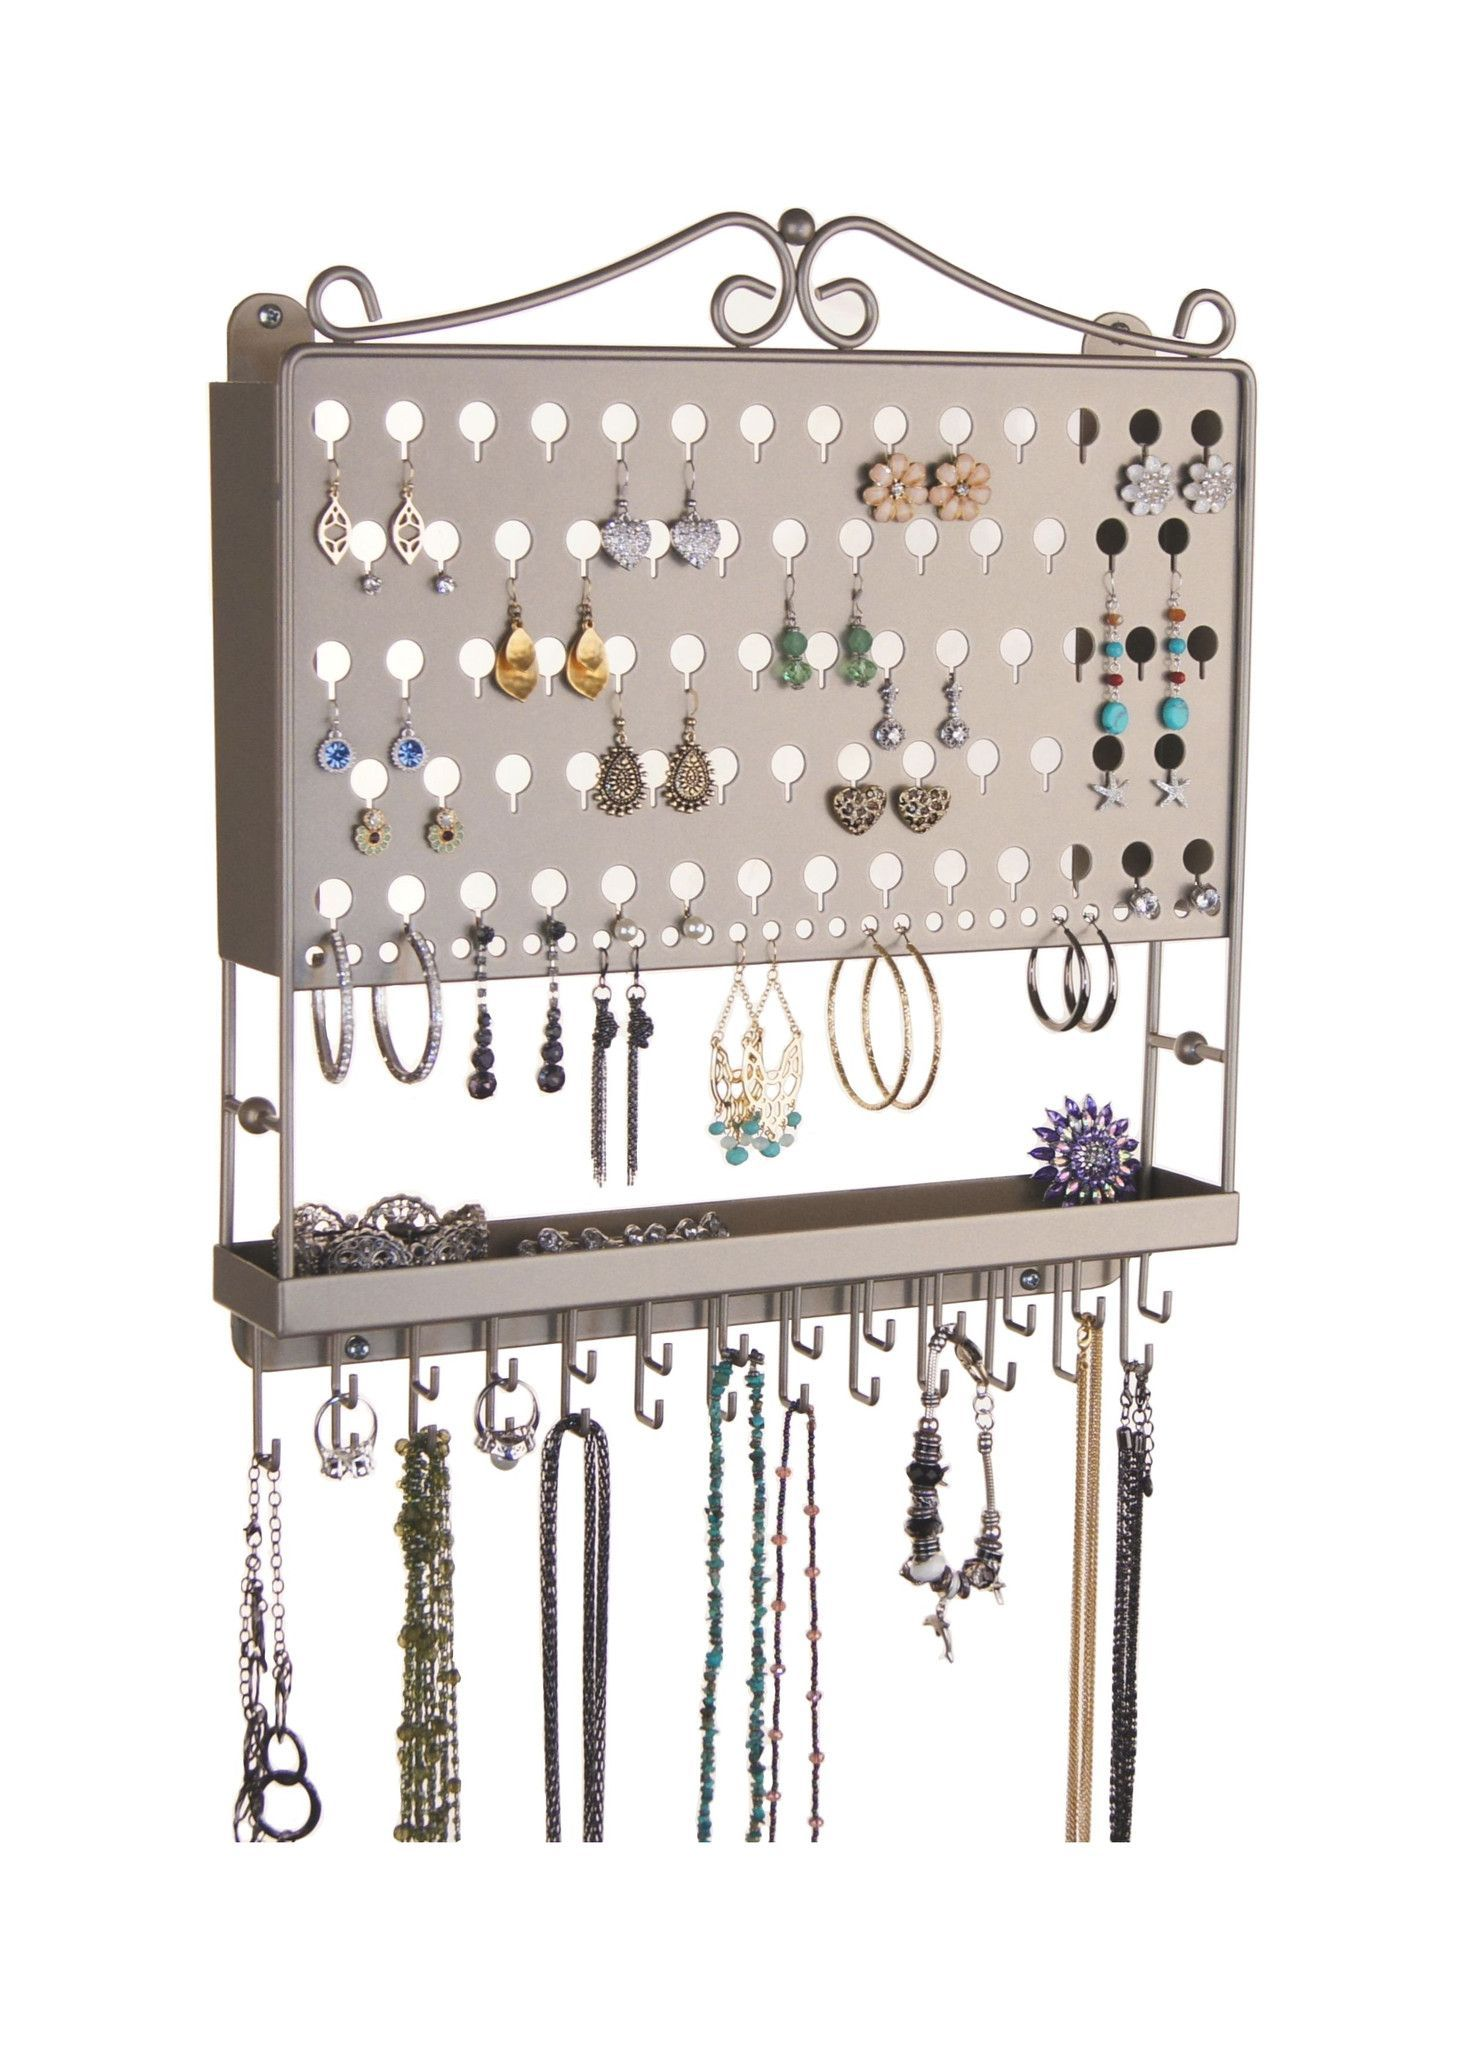 Wall Mount Earring Holder and Necklace Organizer MultiPurpose